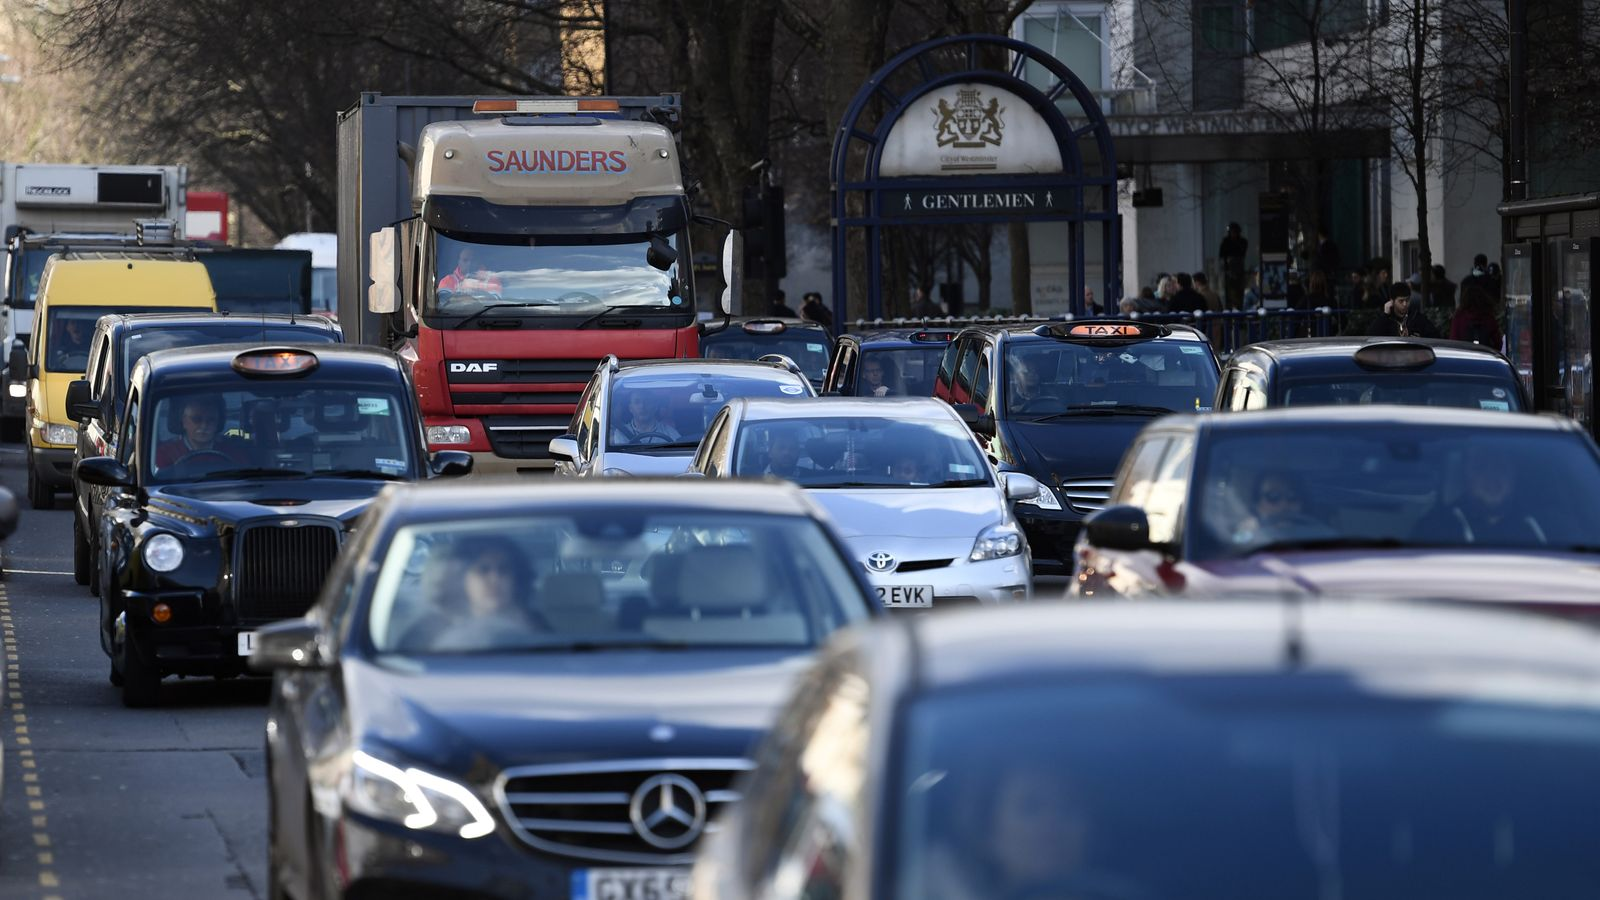 Vehicles pass along Marylebone Road, which is one of the most polluted in London